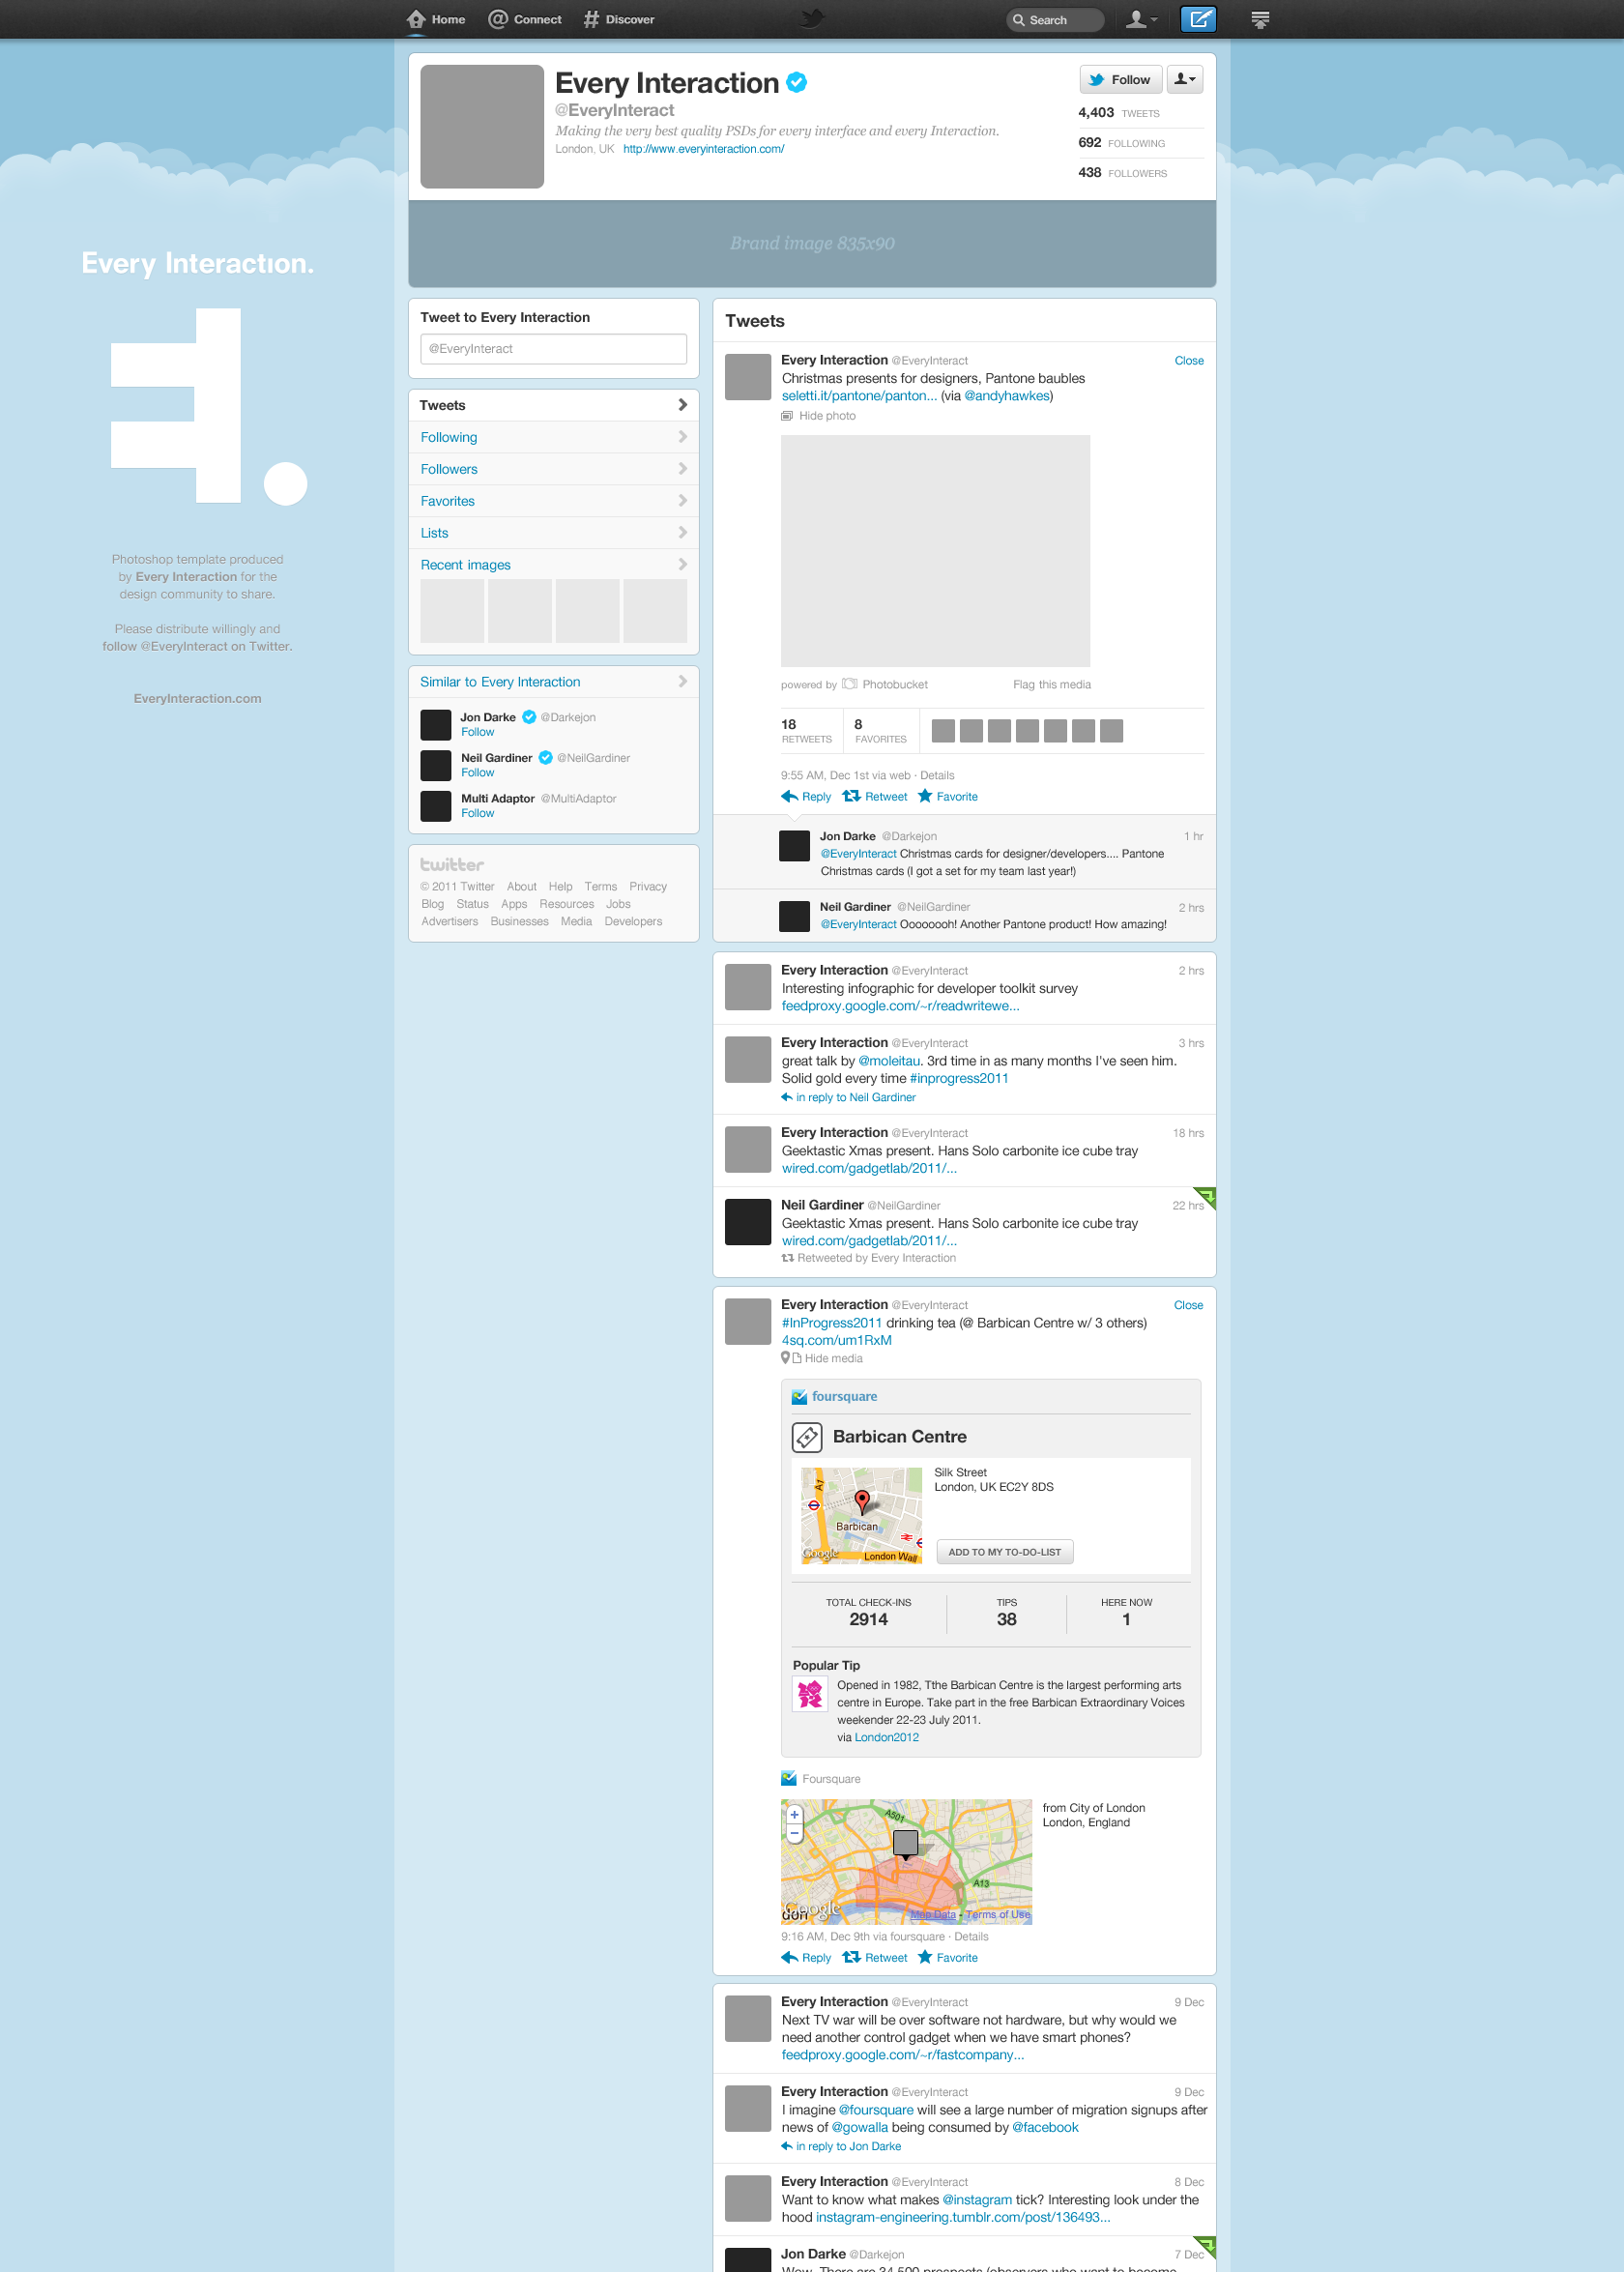 Free new twitter profile page gui psd smashing magazine download the set for free pronofoot35fo Choice Image